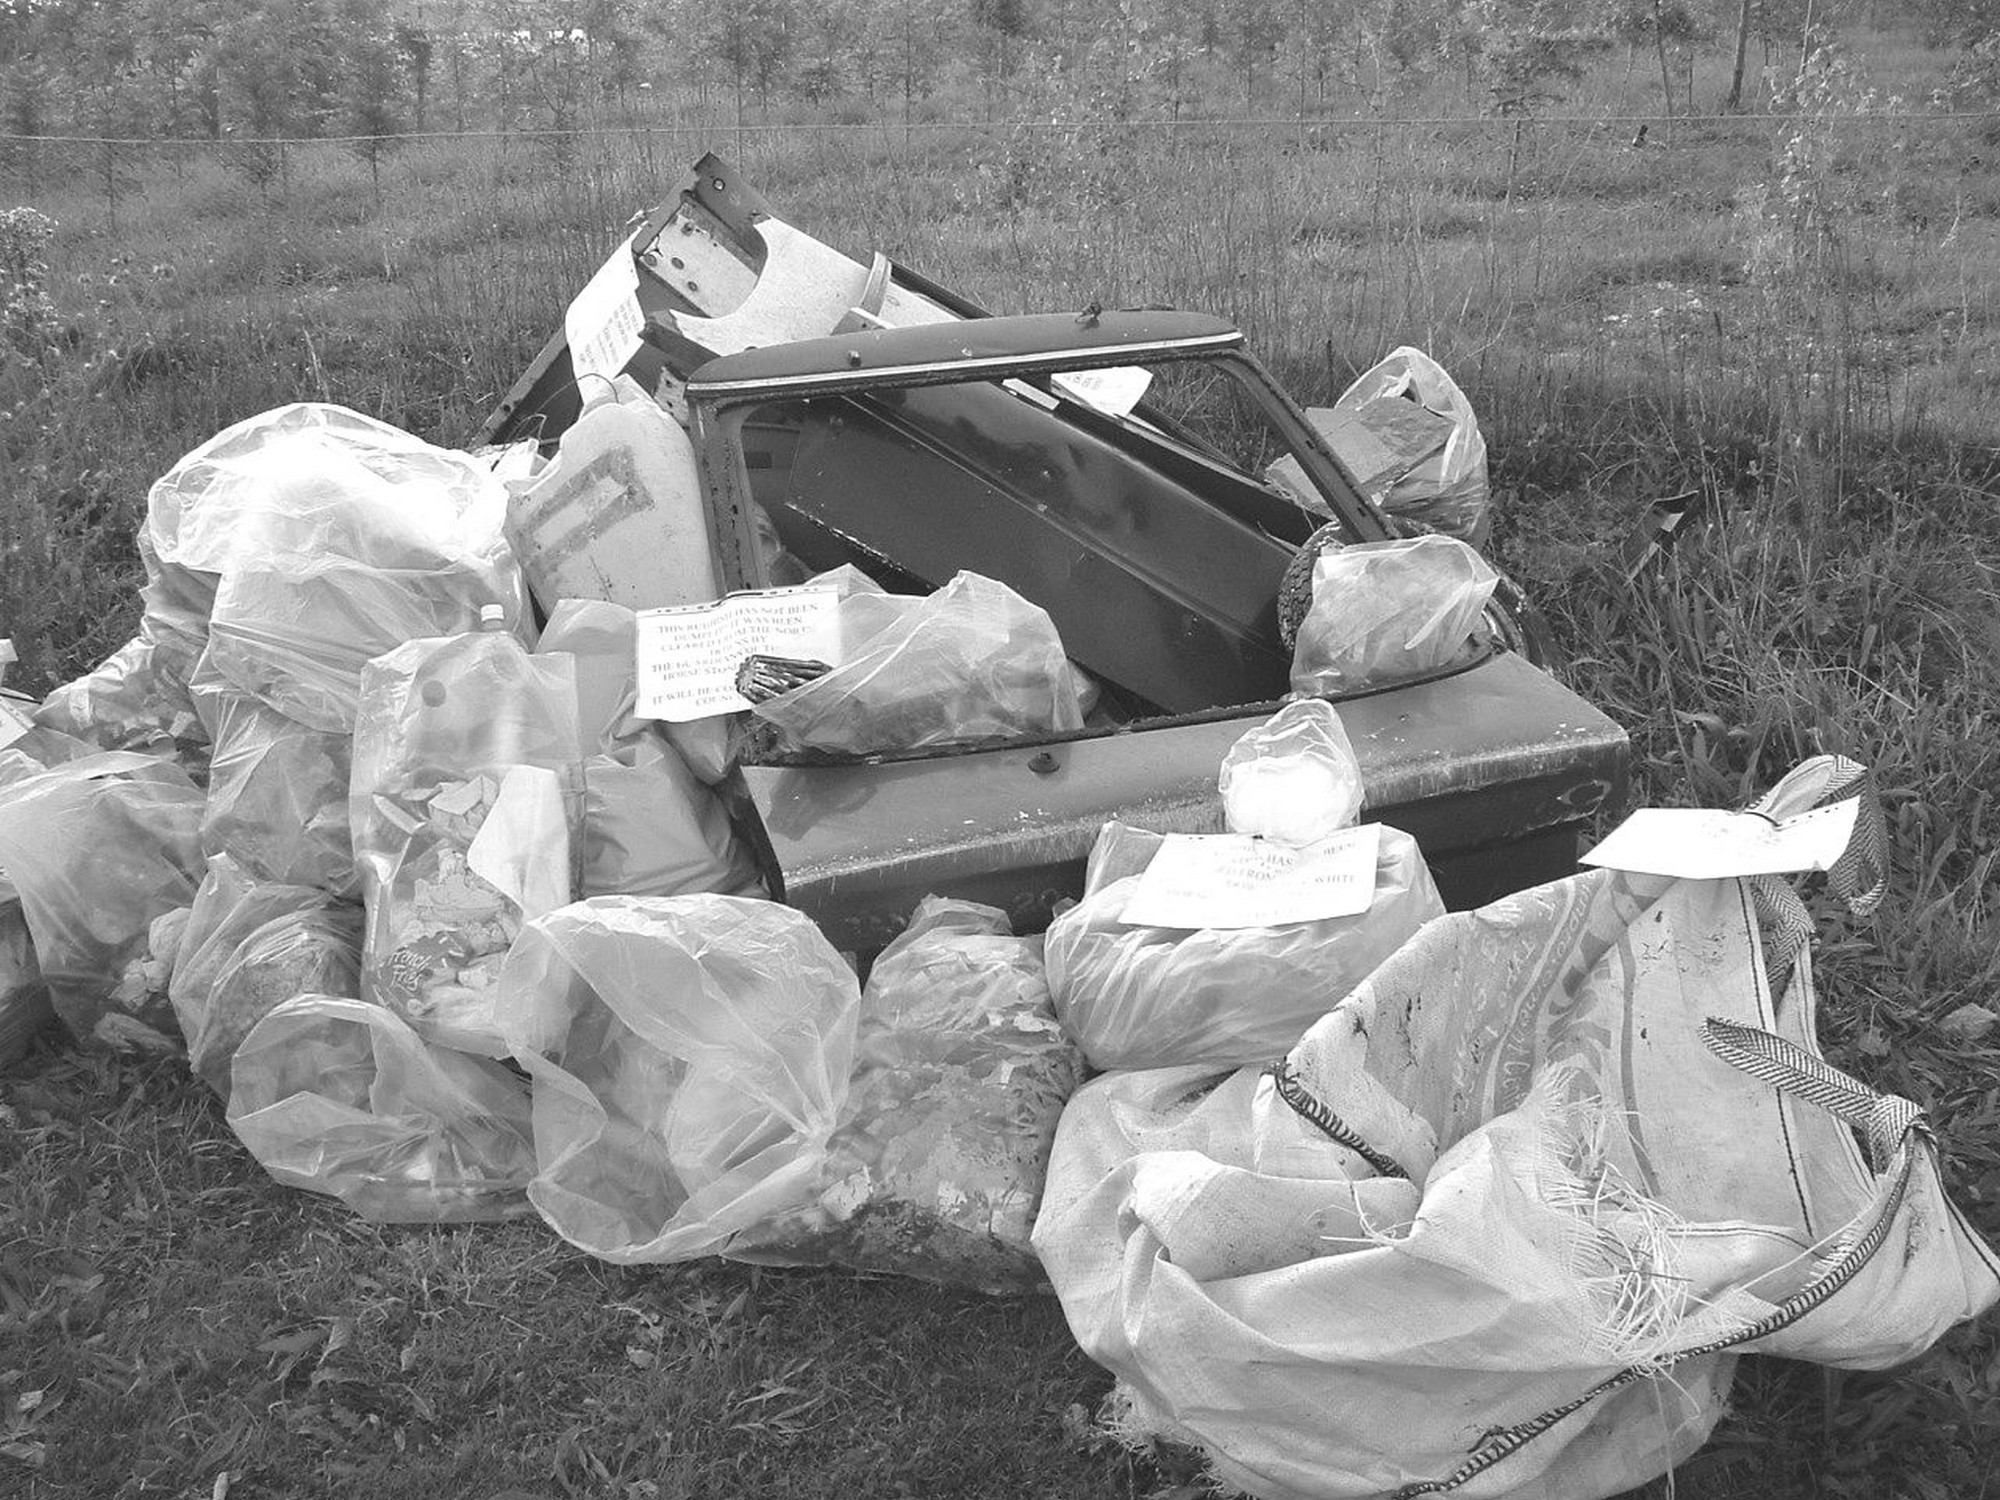 The collected rubbish labelled ready for removal.